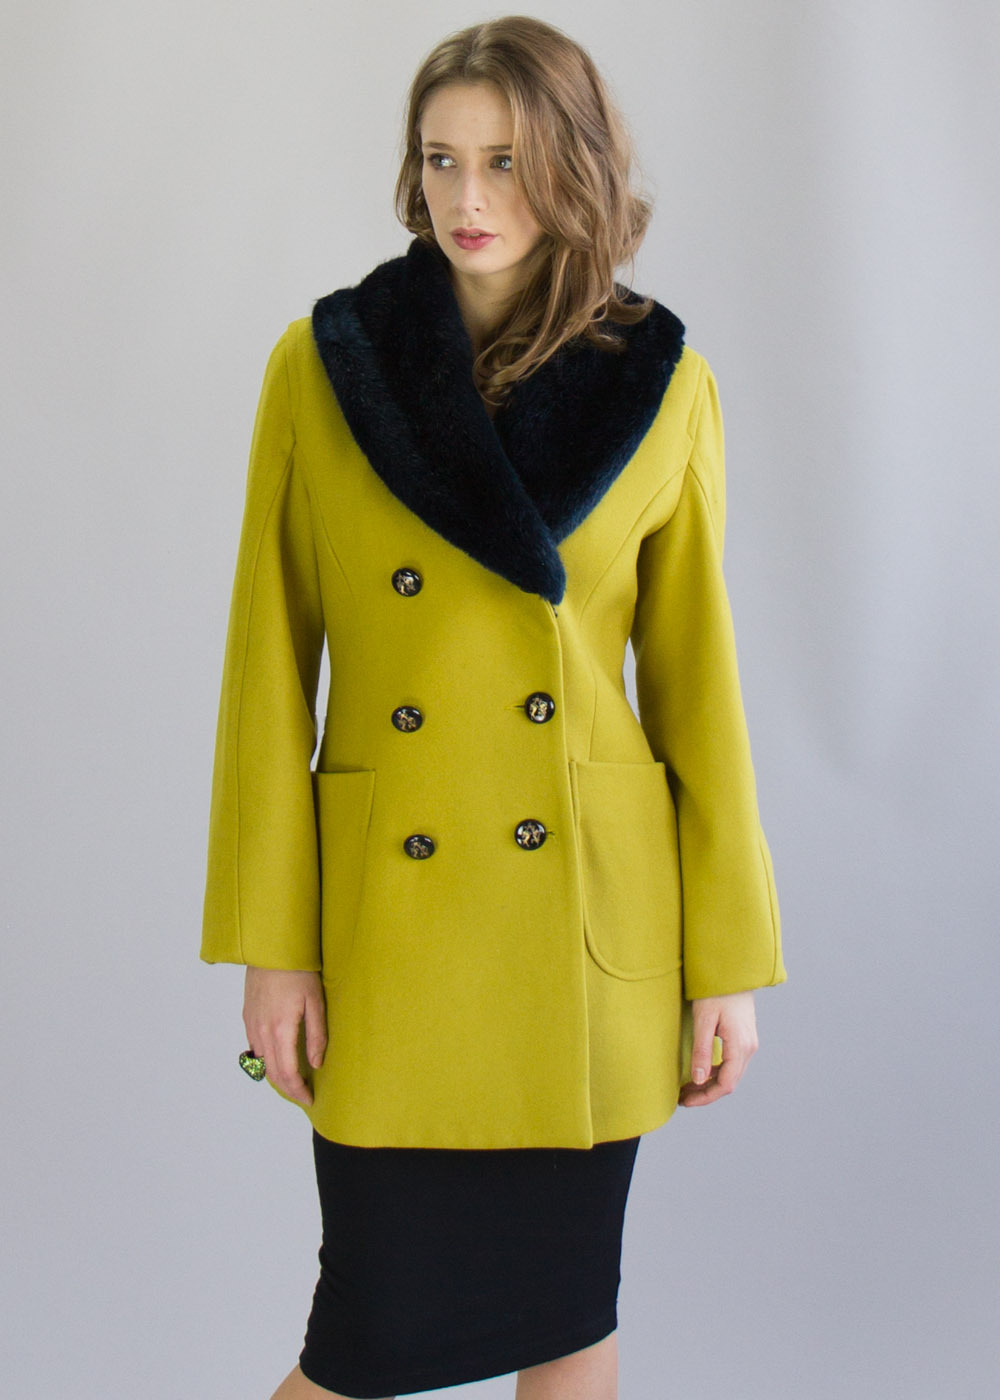 Mustard Soma Pea Coat - pattern: plain; style: double breasted; length: mid thigh; predominant colour: yellow; occasions: casual, creative work; fit: tailored/fitted; fibres: wool - mix; sleeve length: long sleeve; sleeve style: standard; collar: fur; collar break: high; pattern type: fabric; texture group: woven bulky/heavy; trends: 1940's hitchcock heroines; season: a/w 2013; hip detail: front pockets at hip